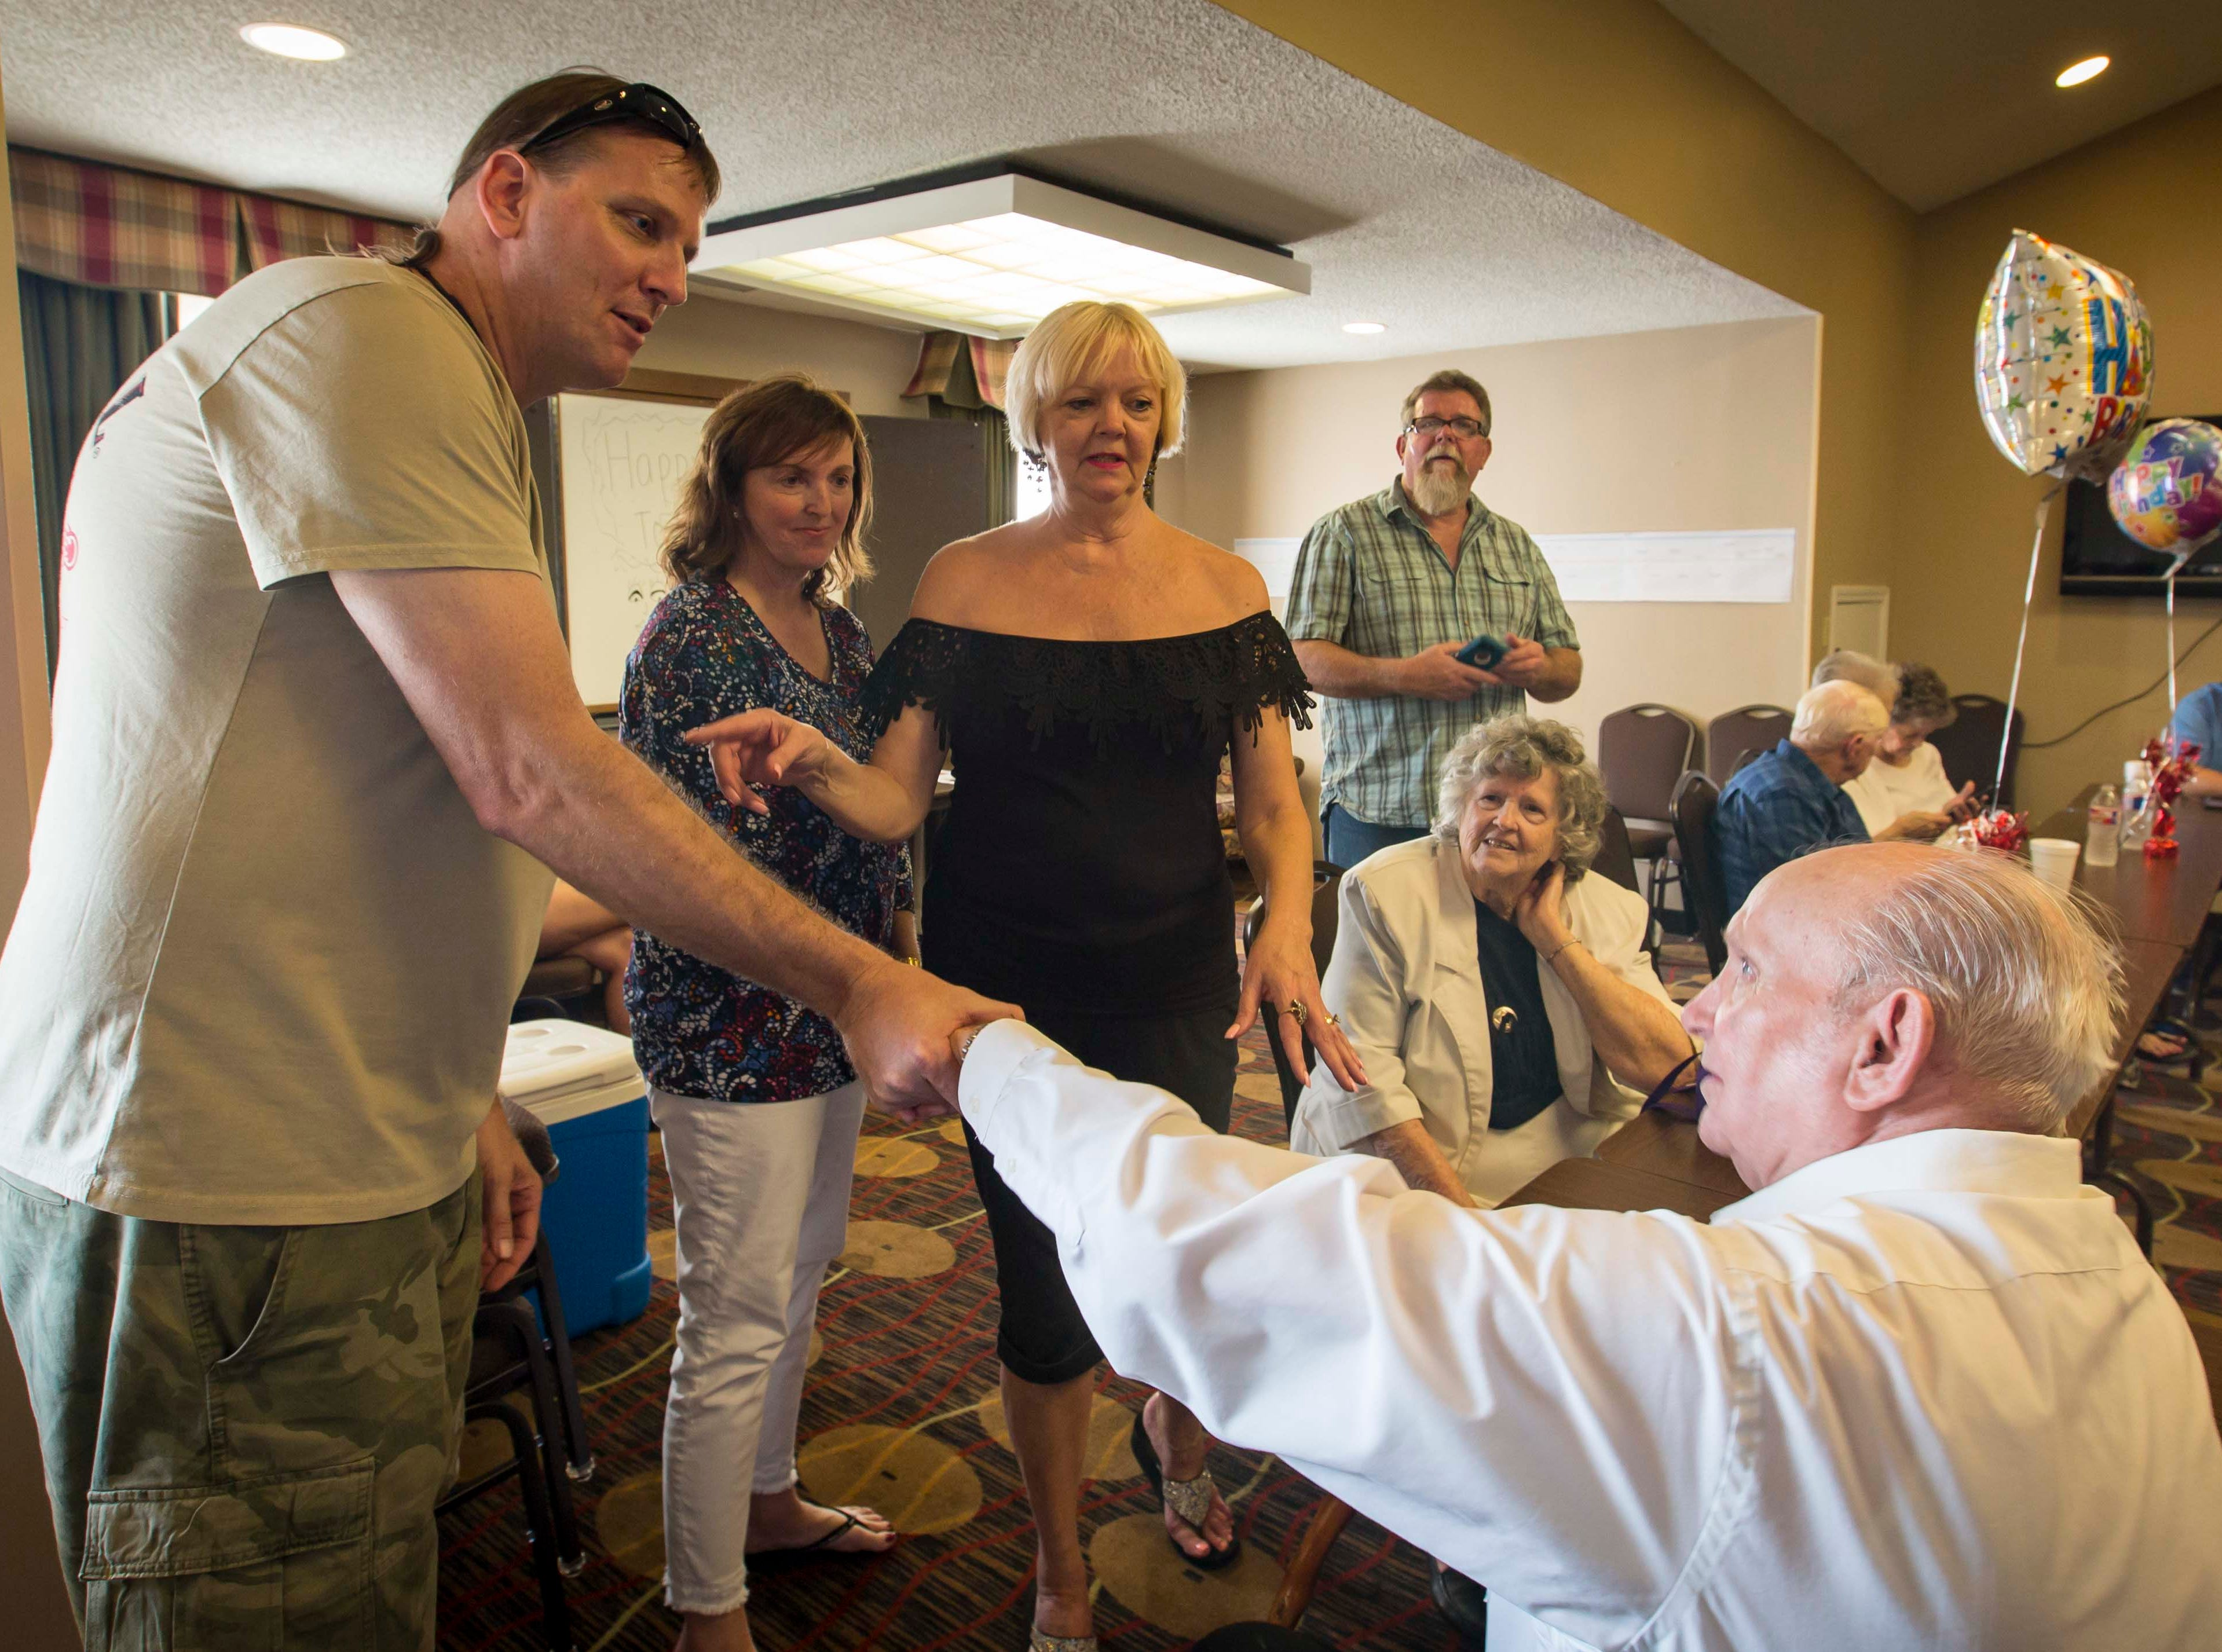 Wade Mulligan of Las Vegas, left, greets his half-uncle Bobby Sexton at a family reunion in Tyler, Texas, Saturday, Sept. 1, 2018, in Tyler, Texas. At center are two of Mulligan's half-sisters, Lori Stangl and Shelia Barron Jenkins.